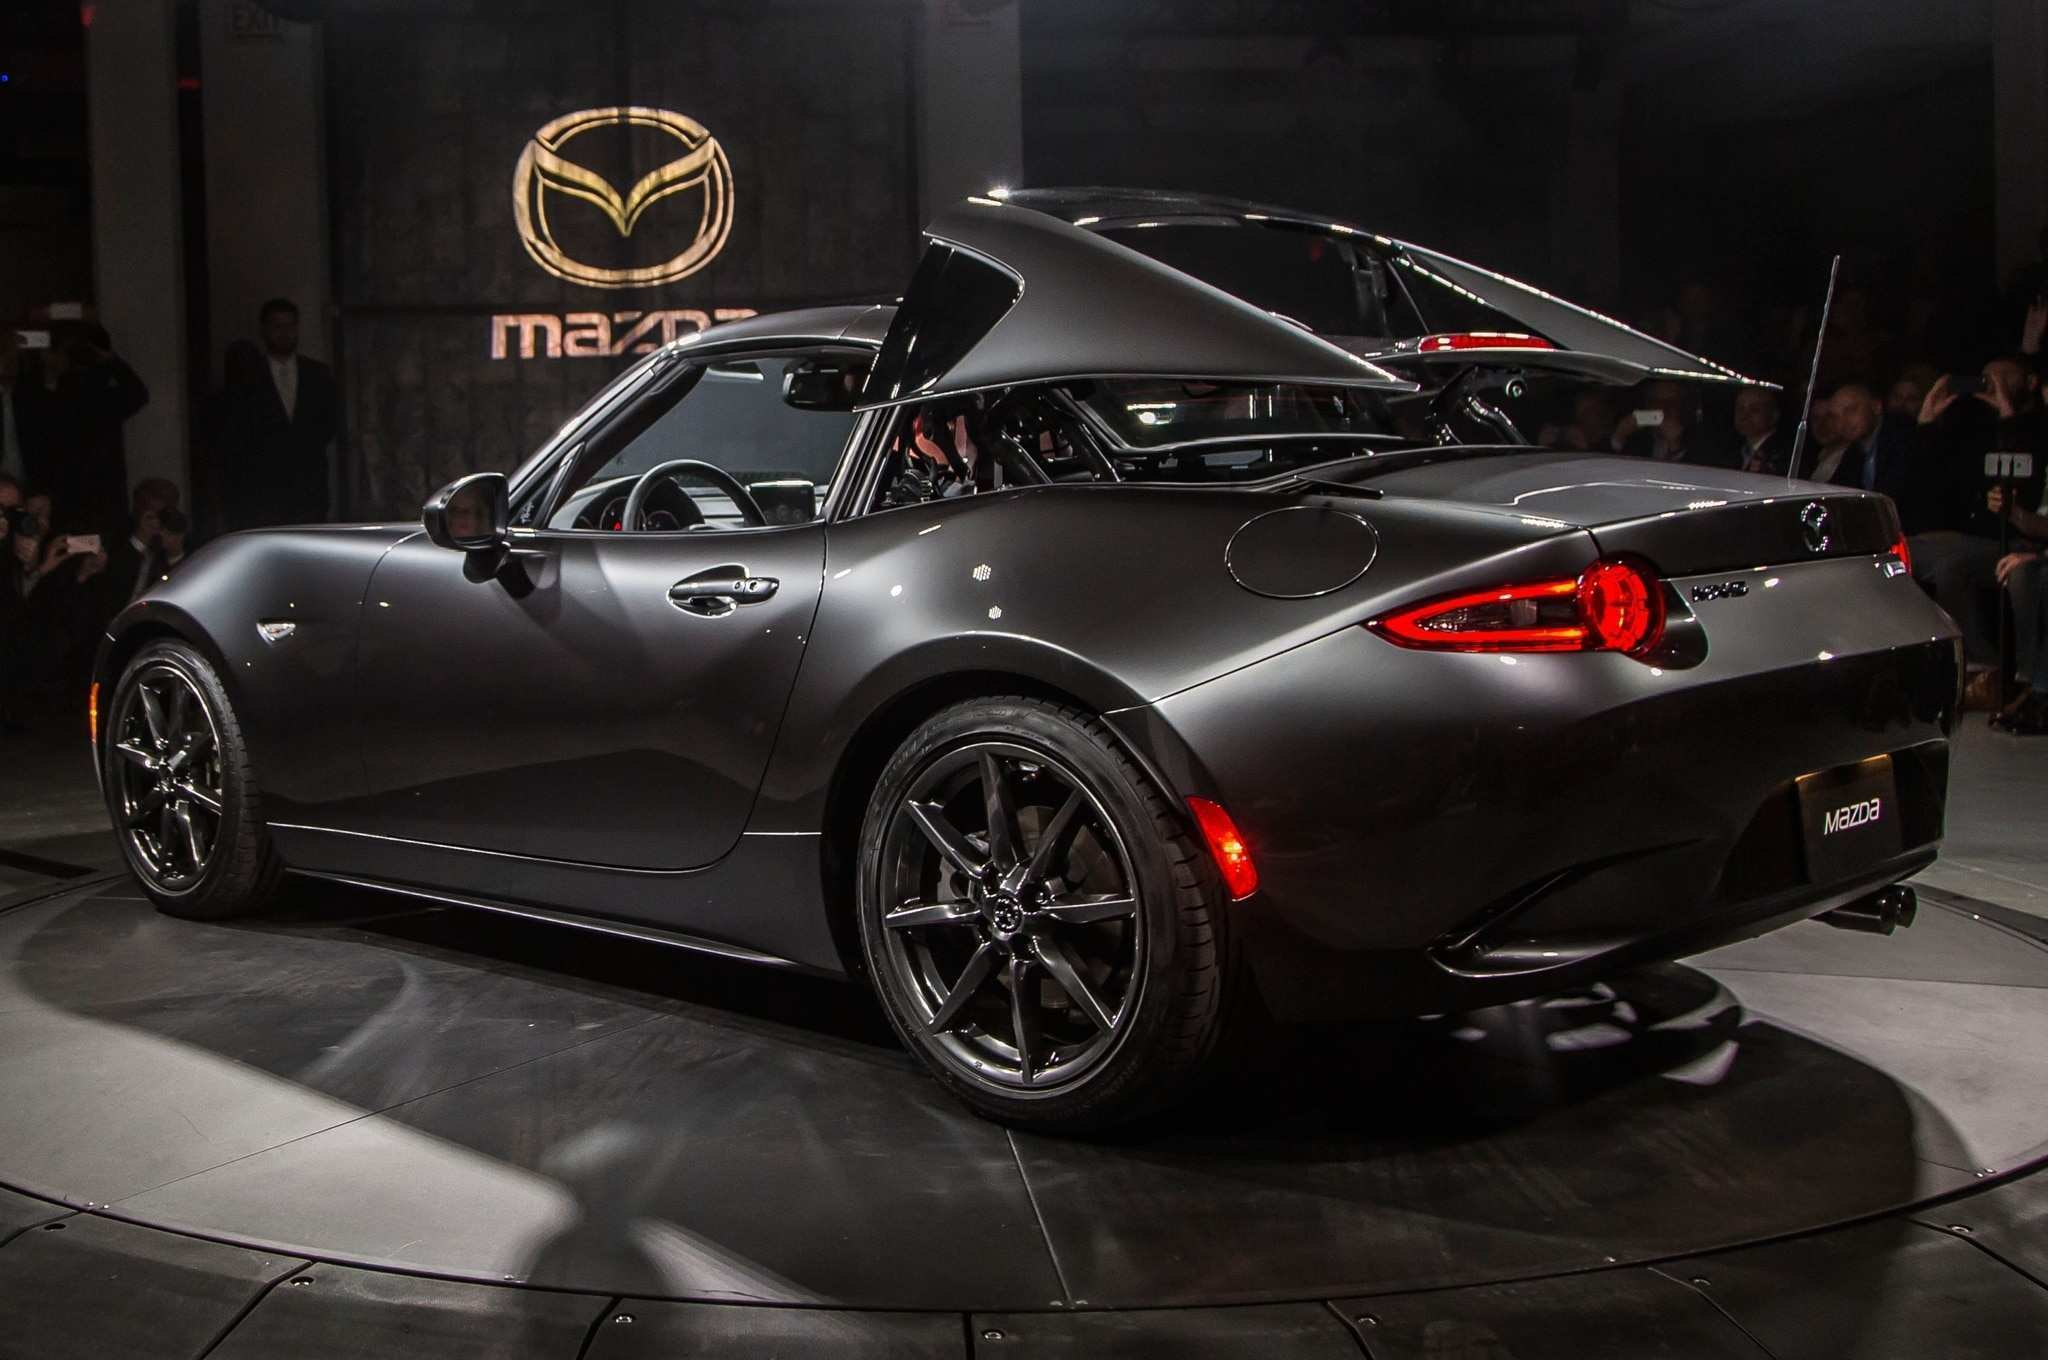 47 New Mazda Miata Rf 2020 Price Design And Review